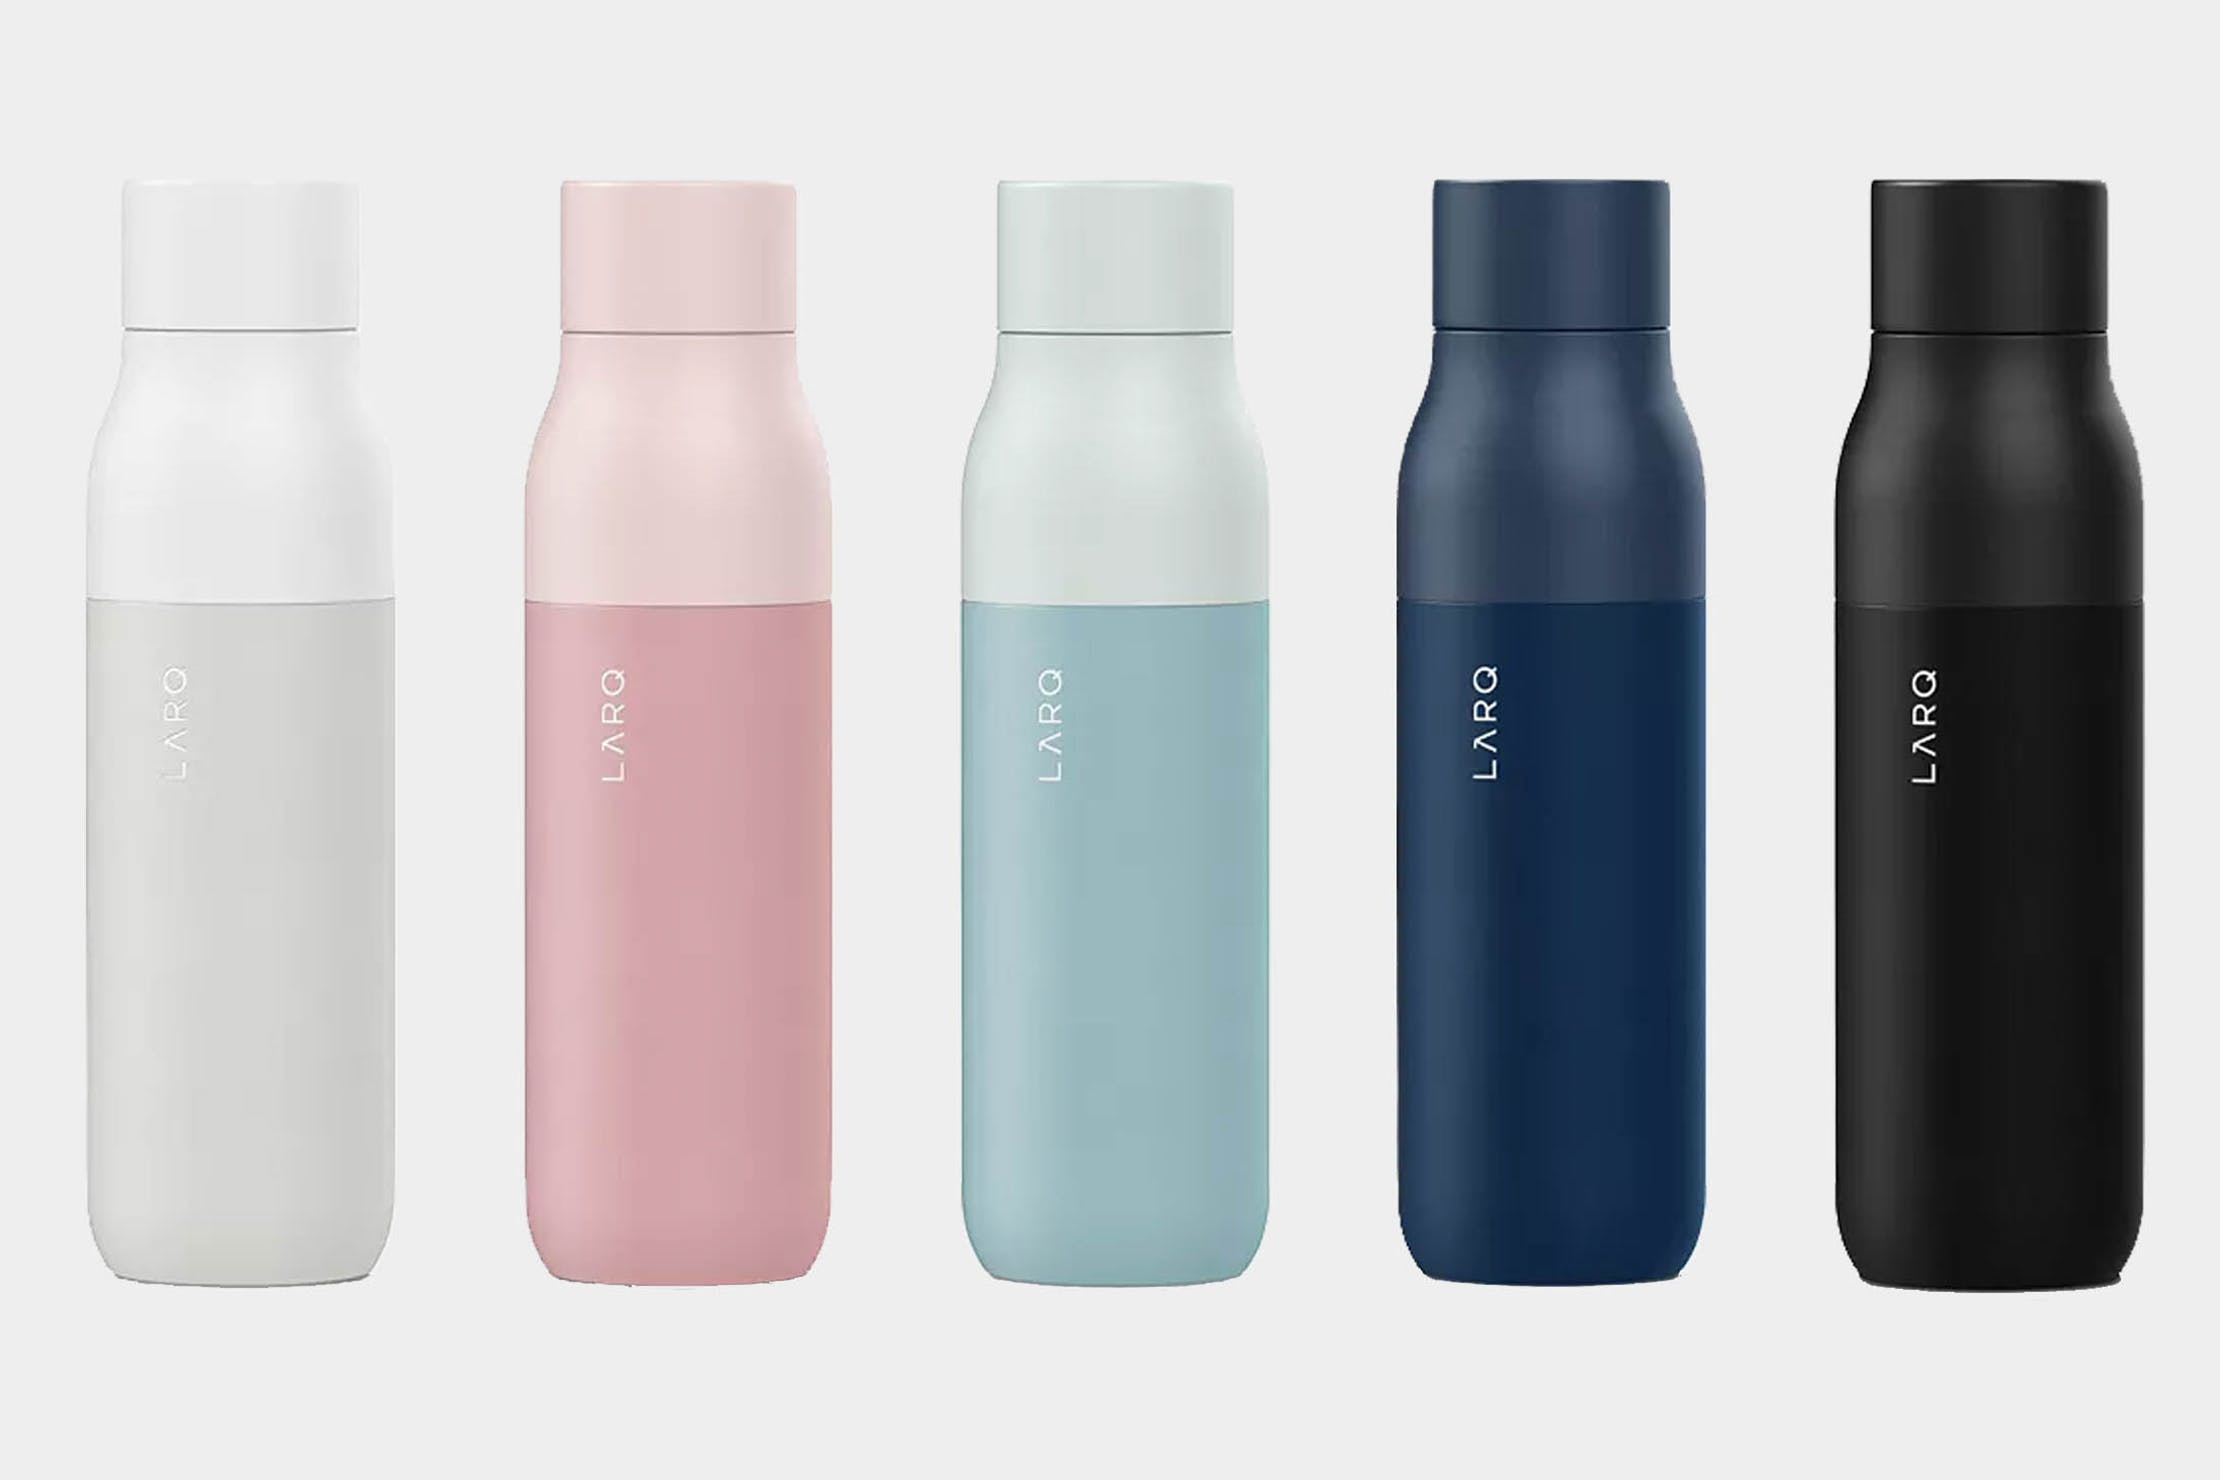 ff37bd34-larq-bottle-colors